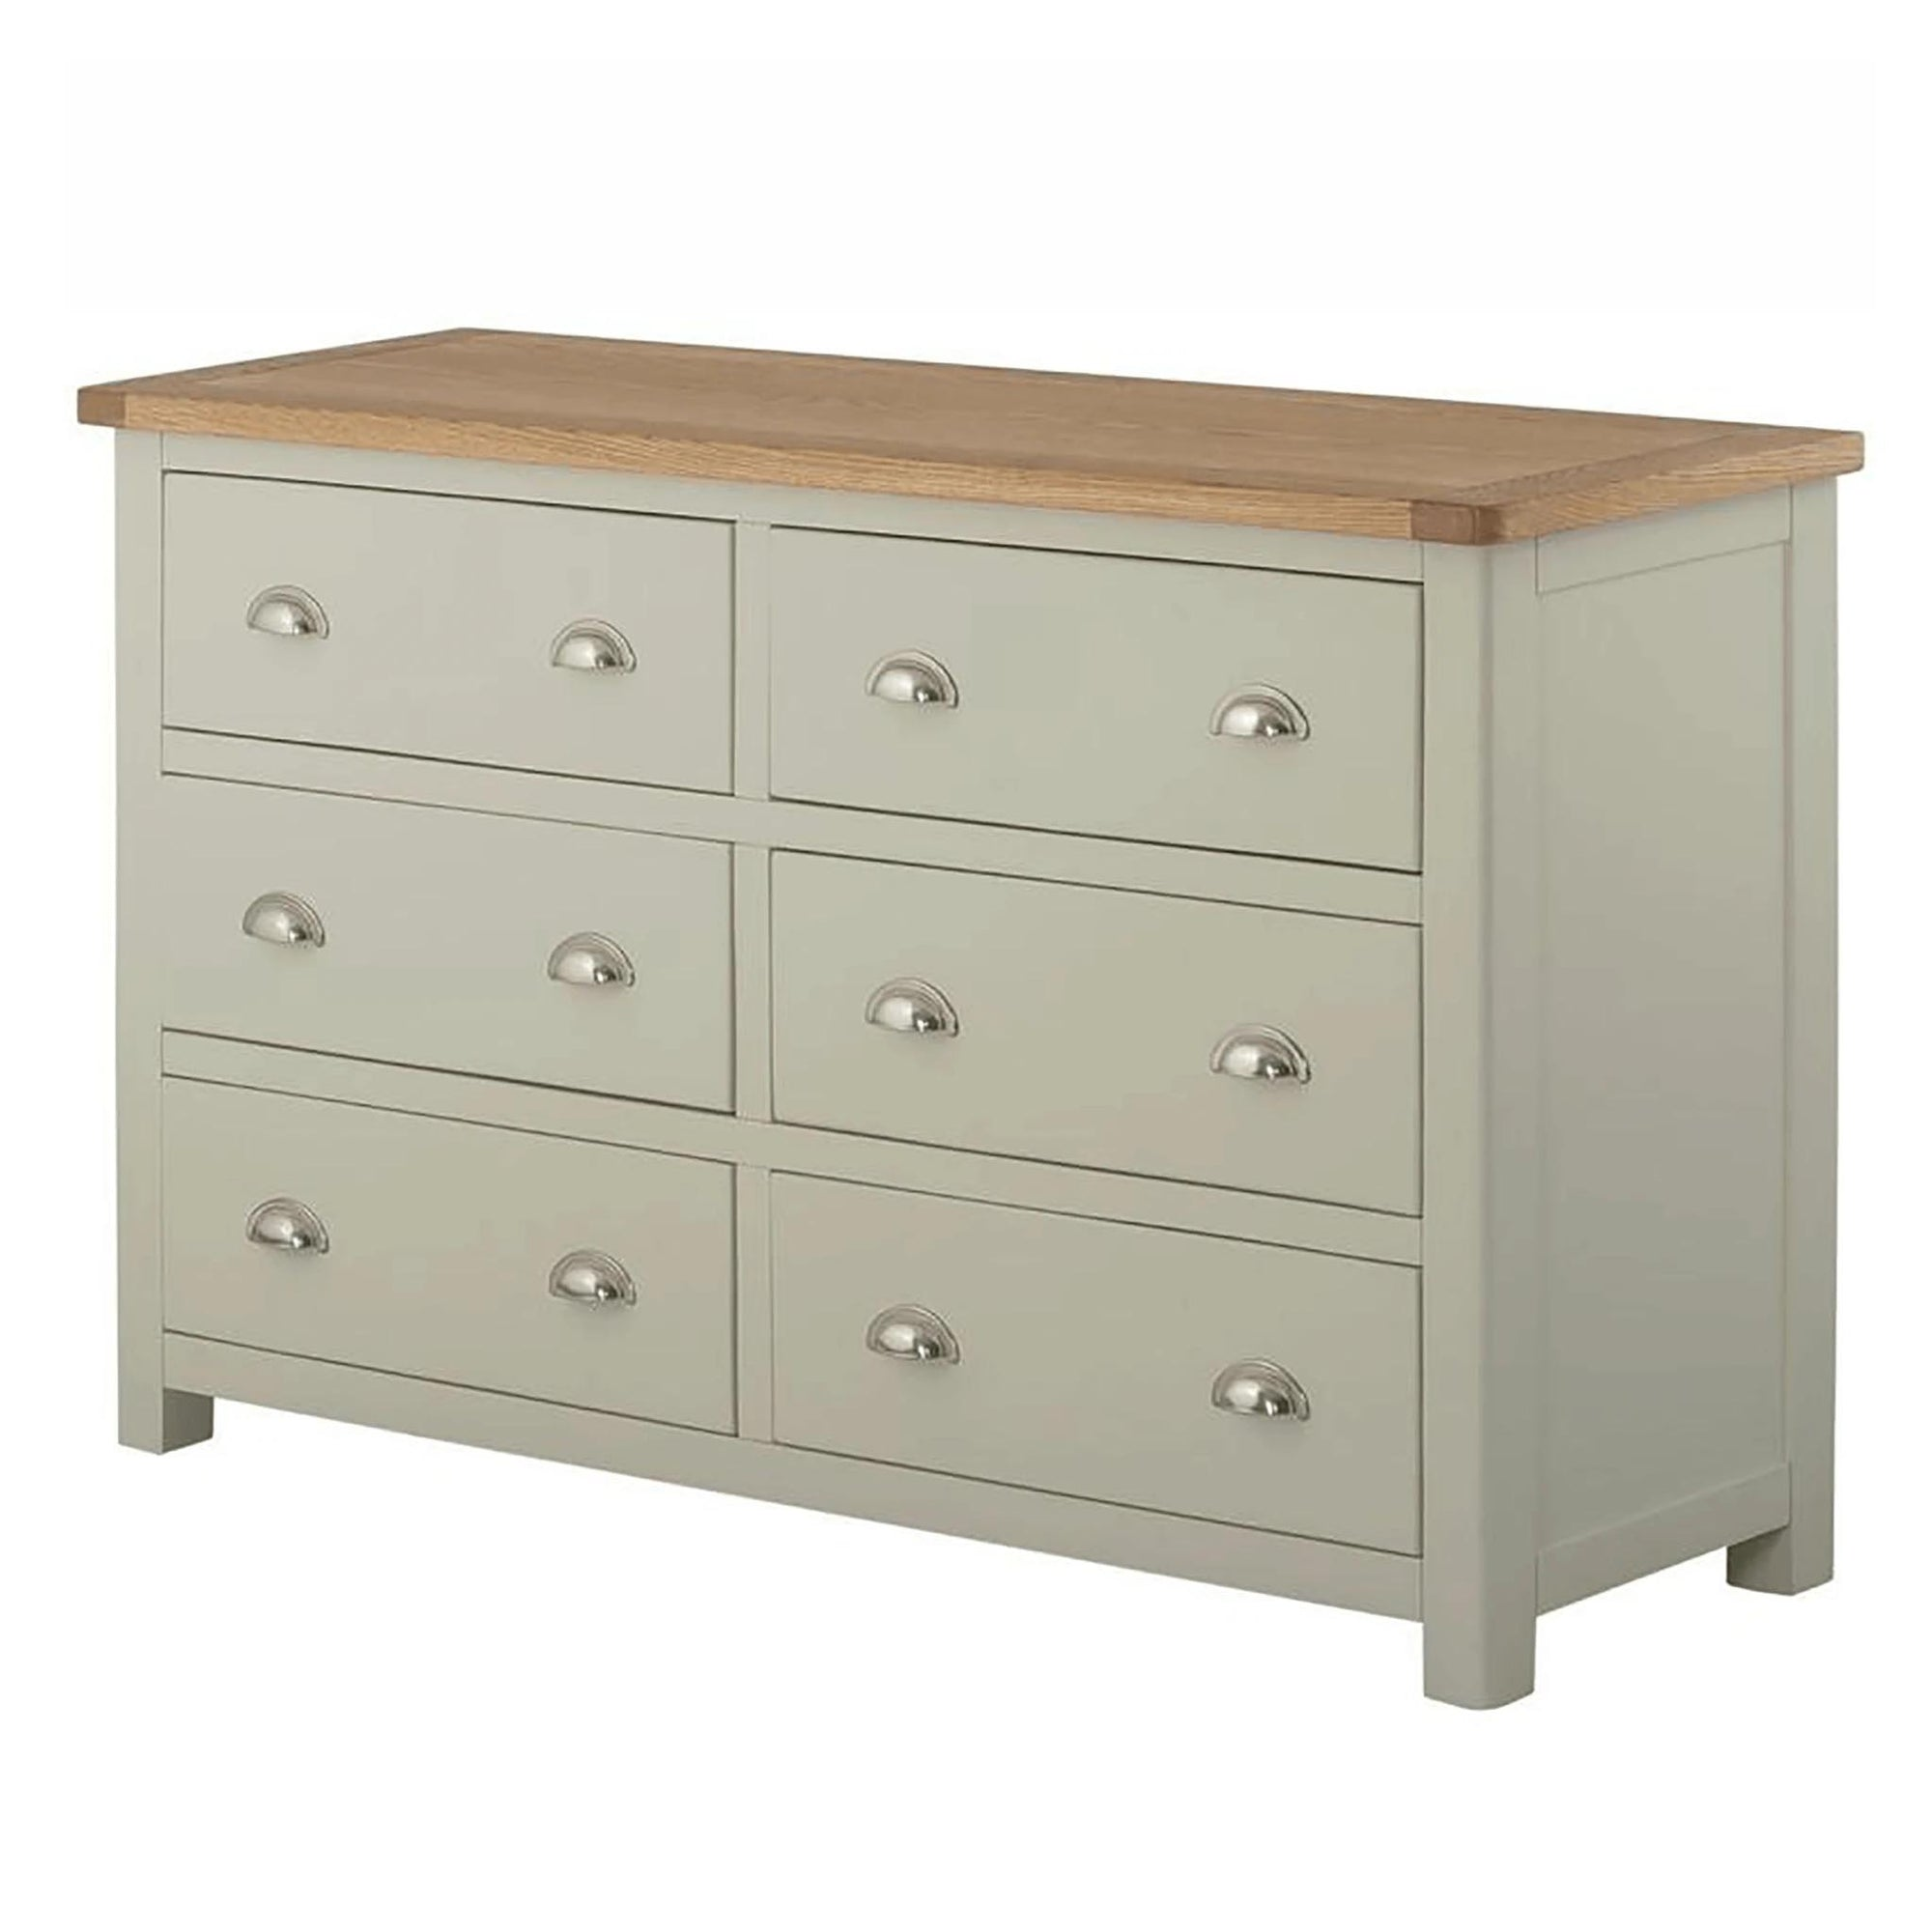 The Padstow Grey Wooden Chest of Drawers from Roseland Furniture